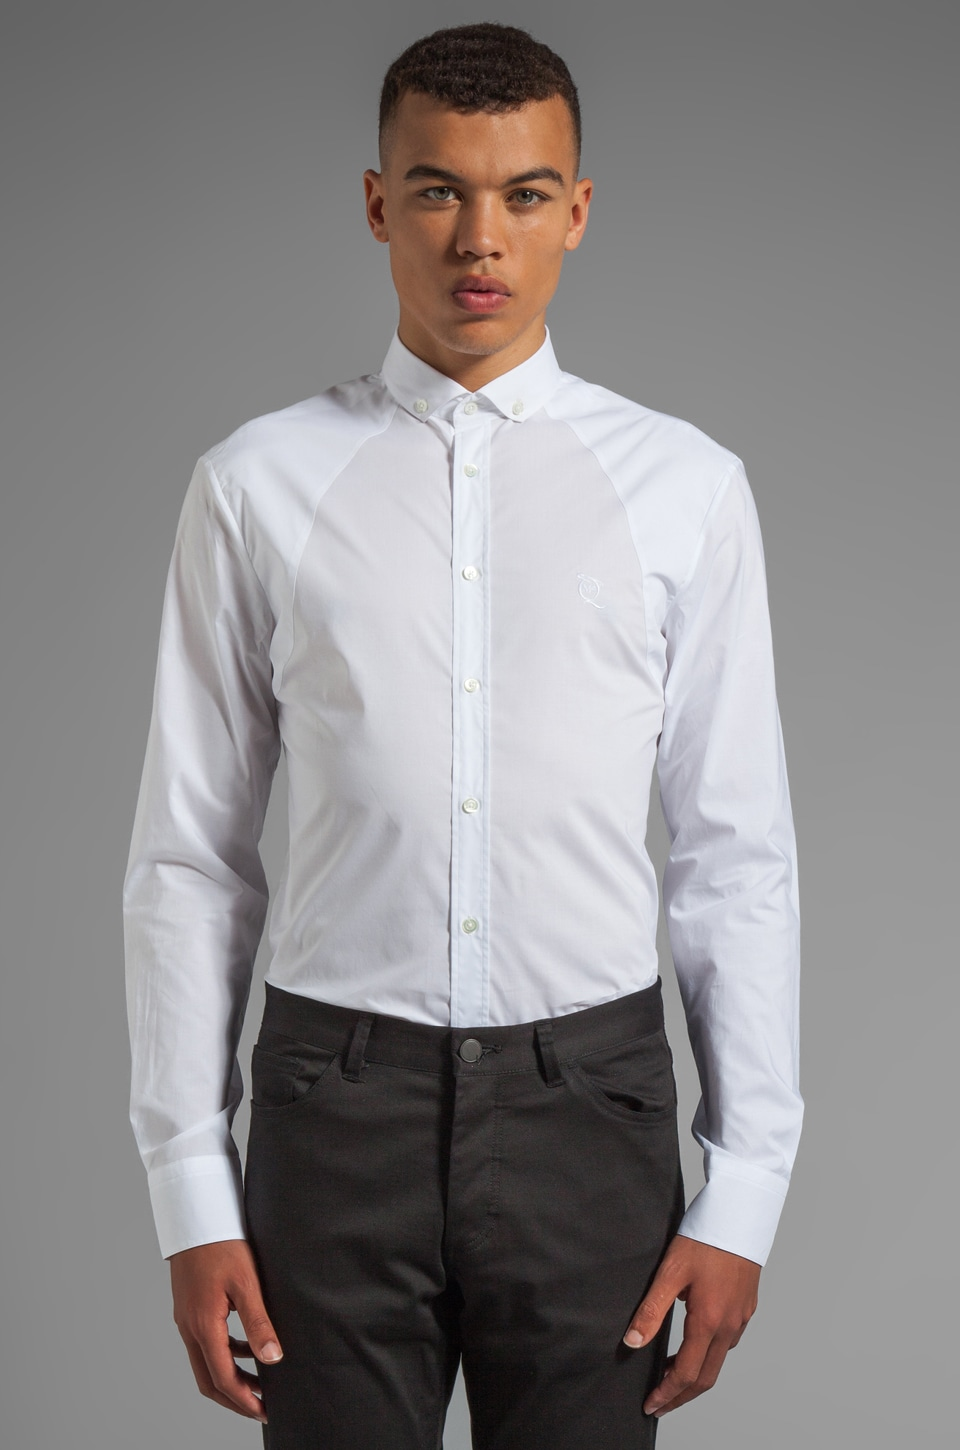 McQ Alexander McQueen Shirting Harness Button Up in Optic White